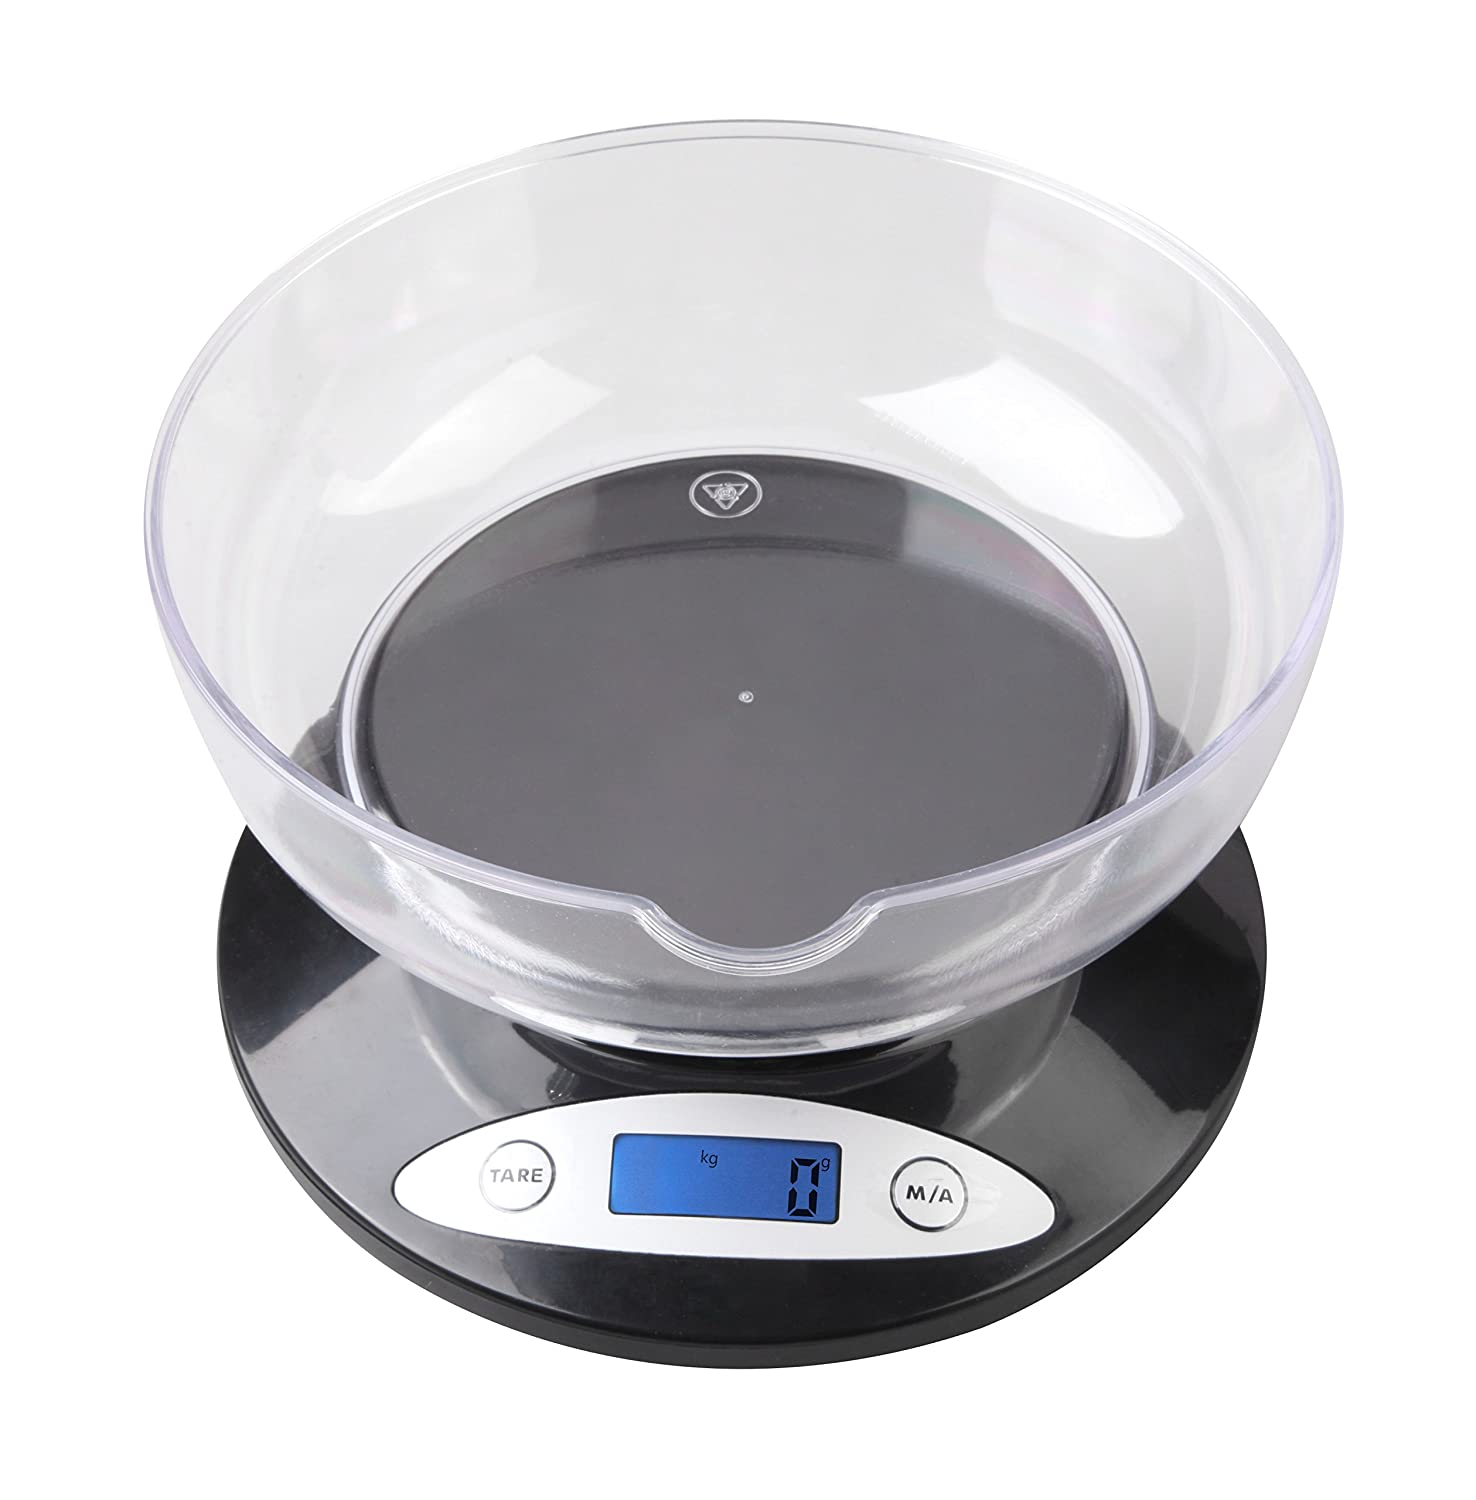 Weighmax Electronic Kitchen Scale - Weighmax 2810-2KG black W-2810-5KG-BLACK